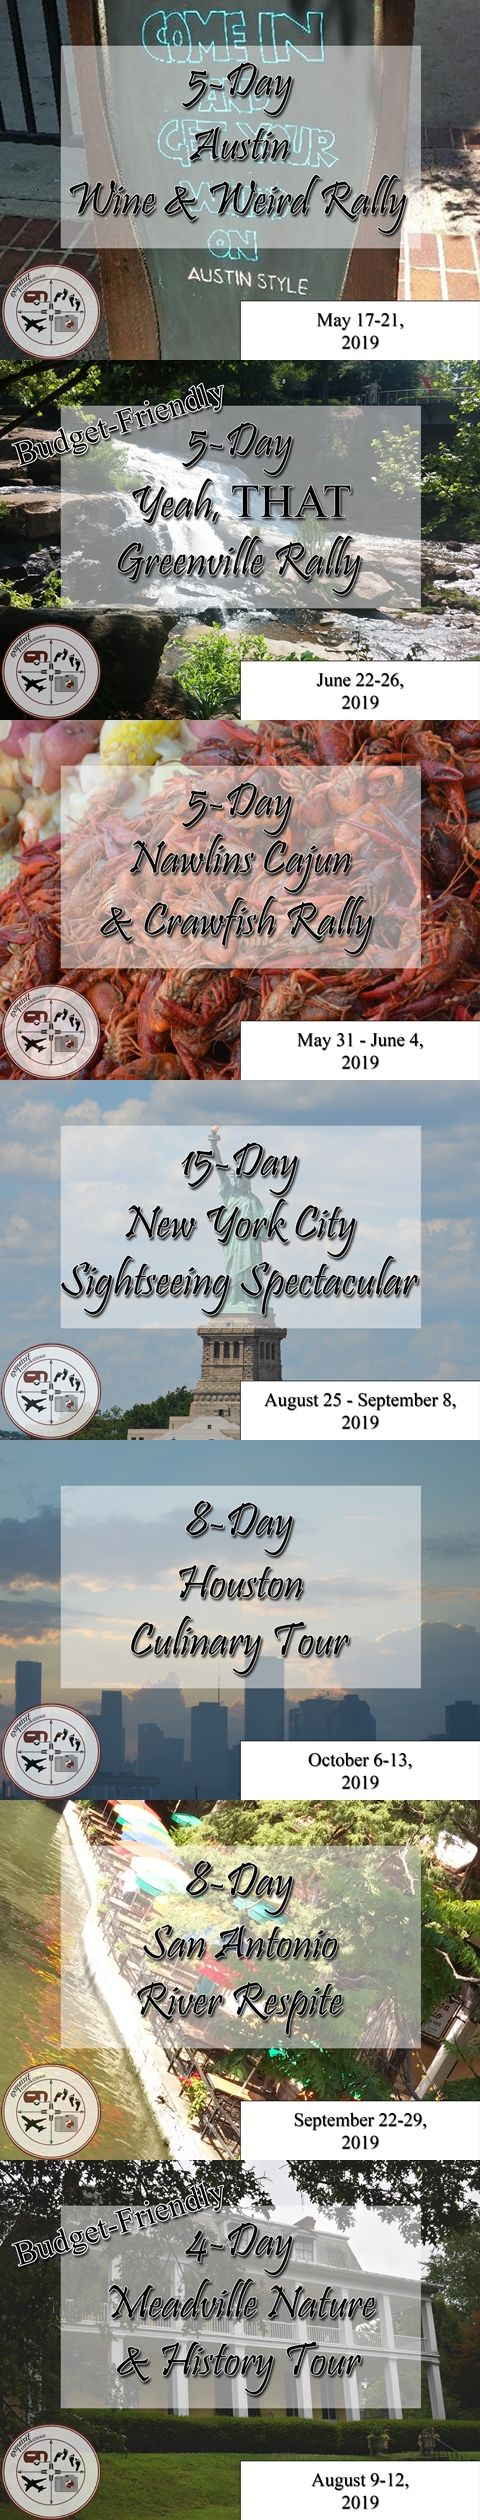 exquisitEXPLORATIONS' Brand Spanking New RV Rallies, Coming to a city near you starting Spring, 2019!